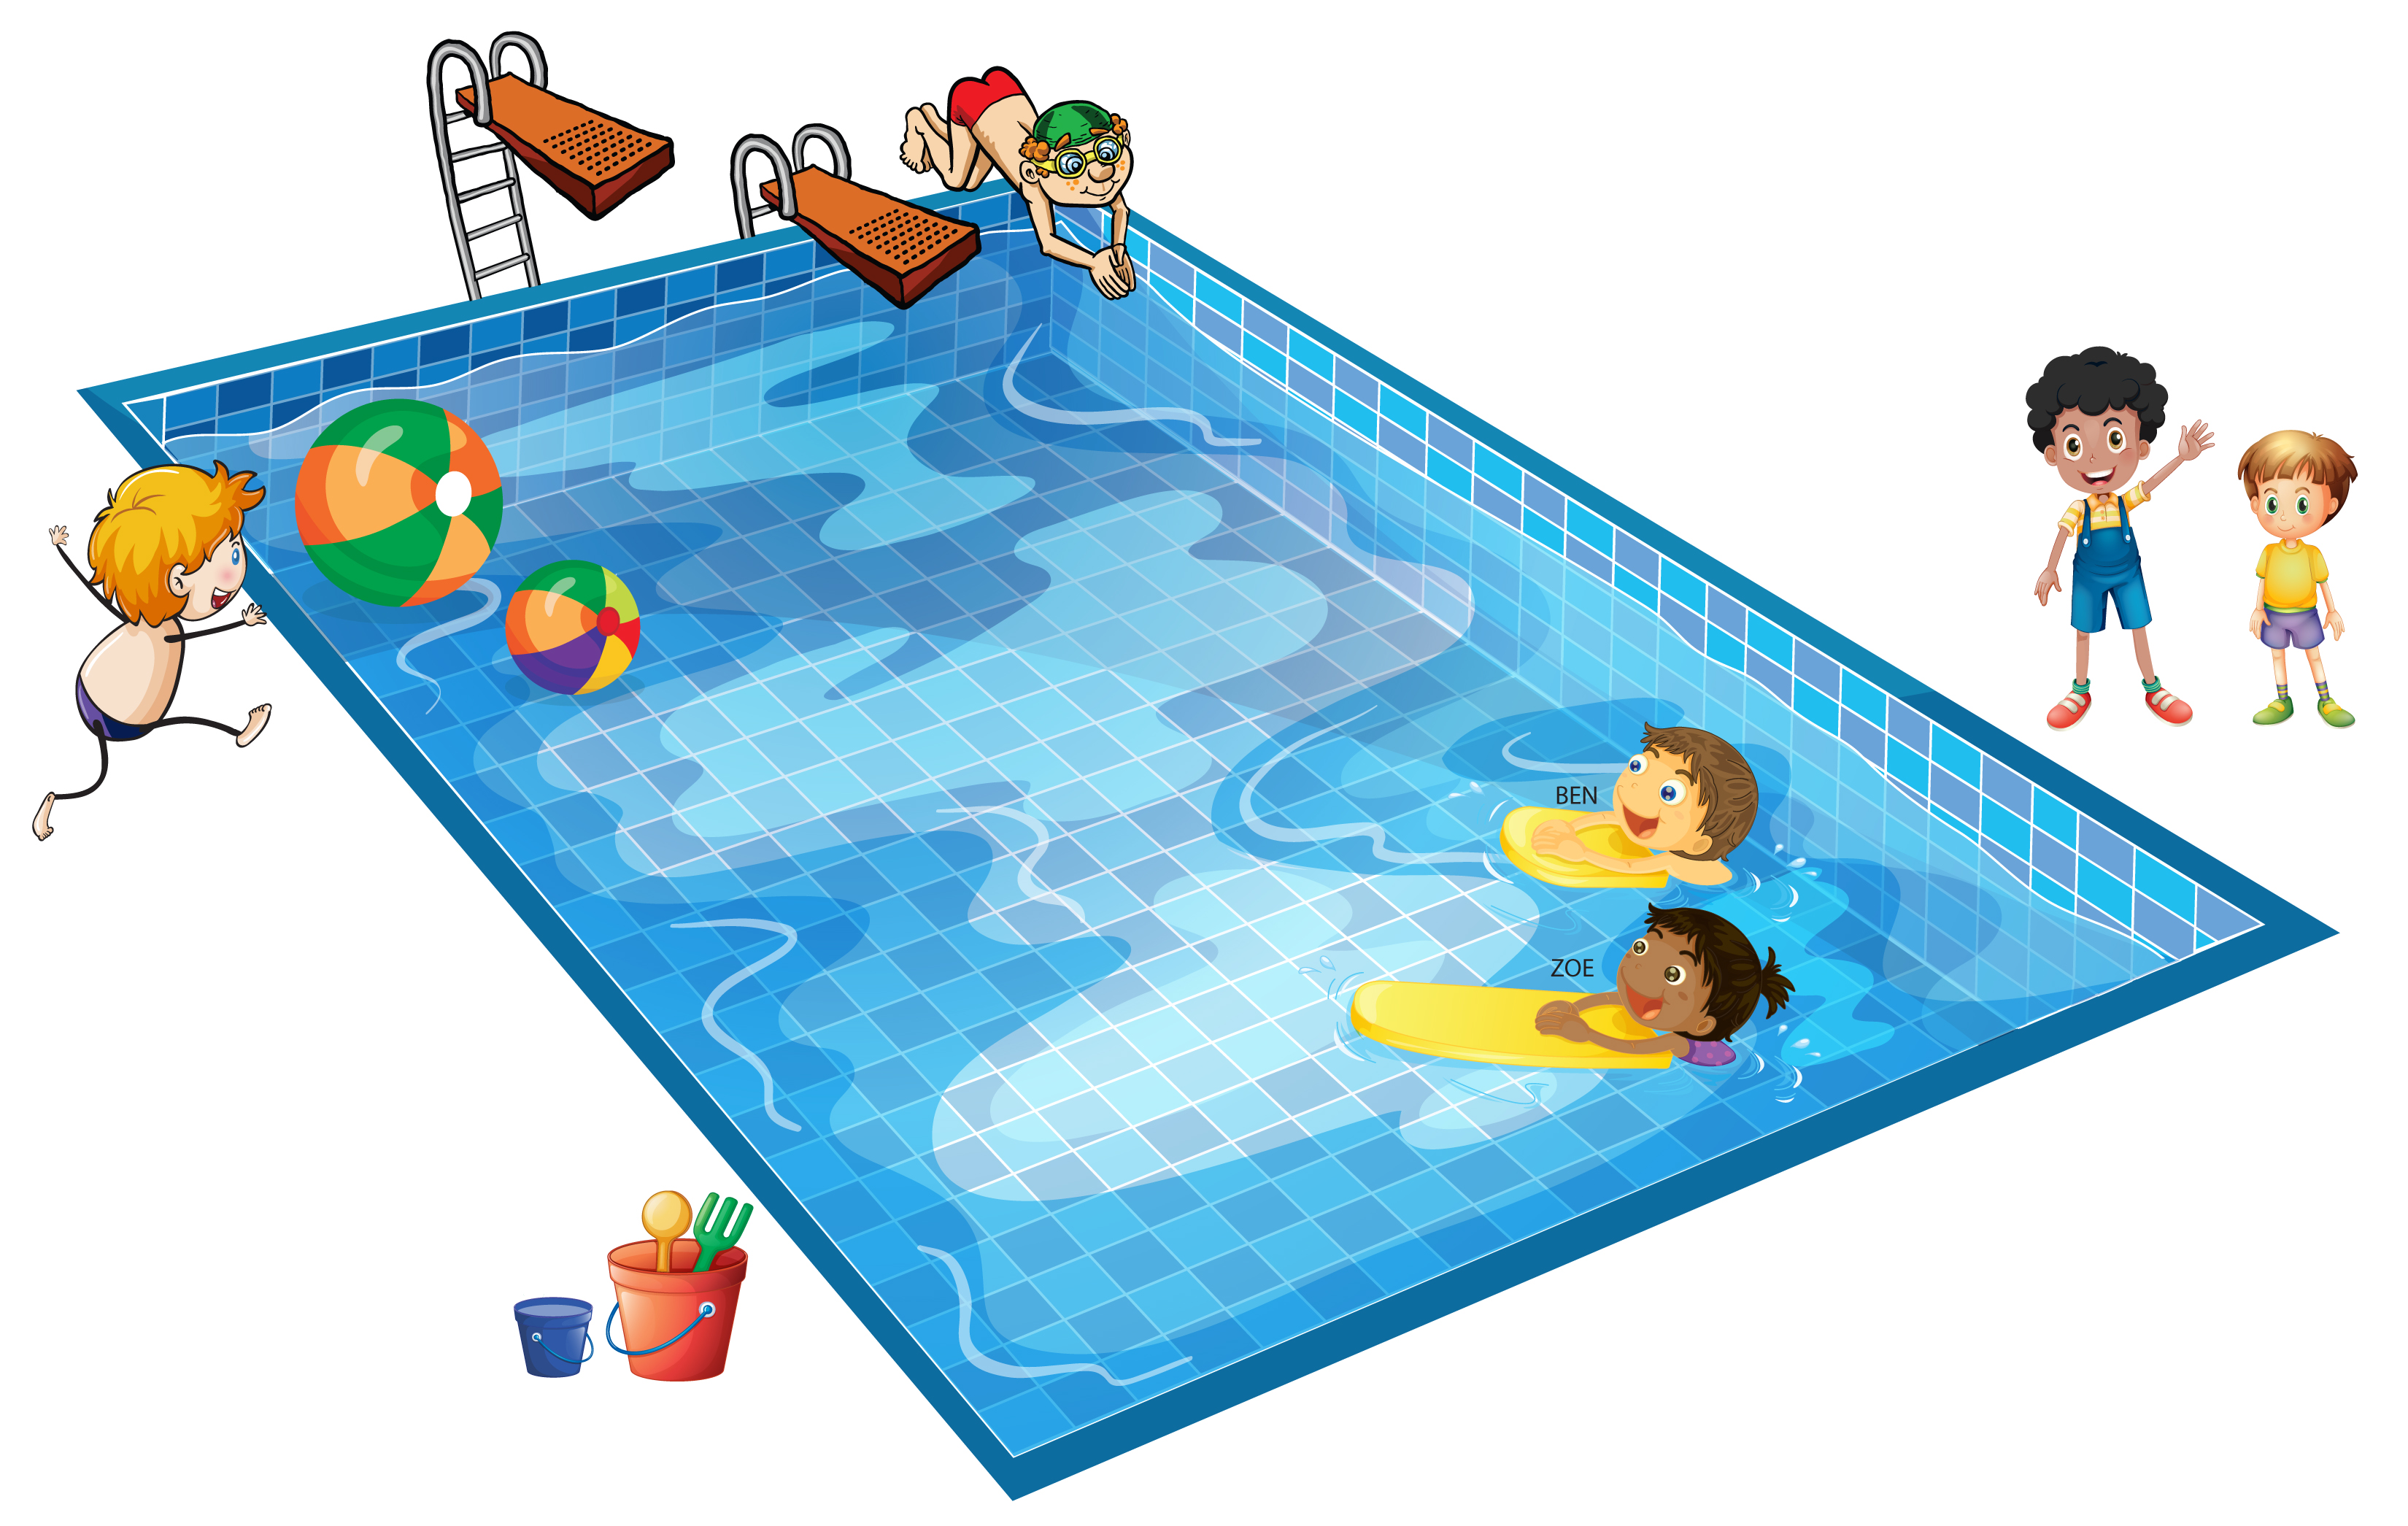 Hotel icon indoor pool clip art at clker-Hotel icon indoor pool clip art at clker vector clip art-4